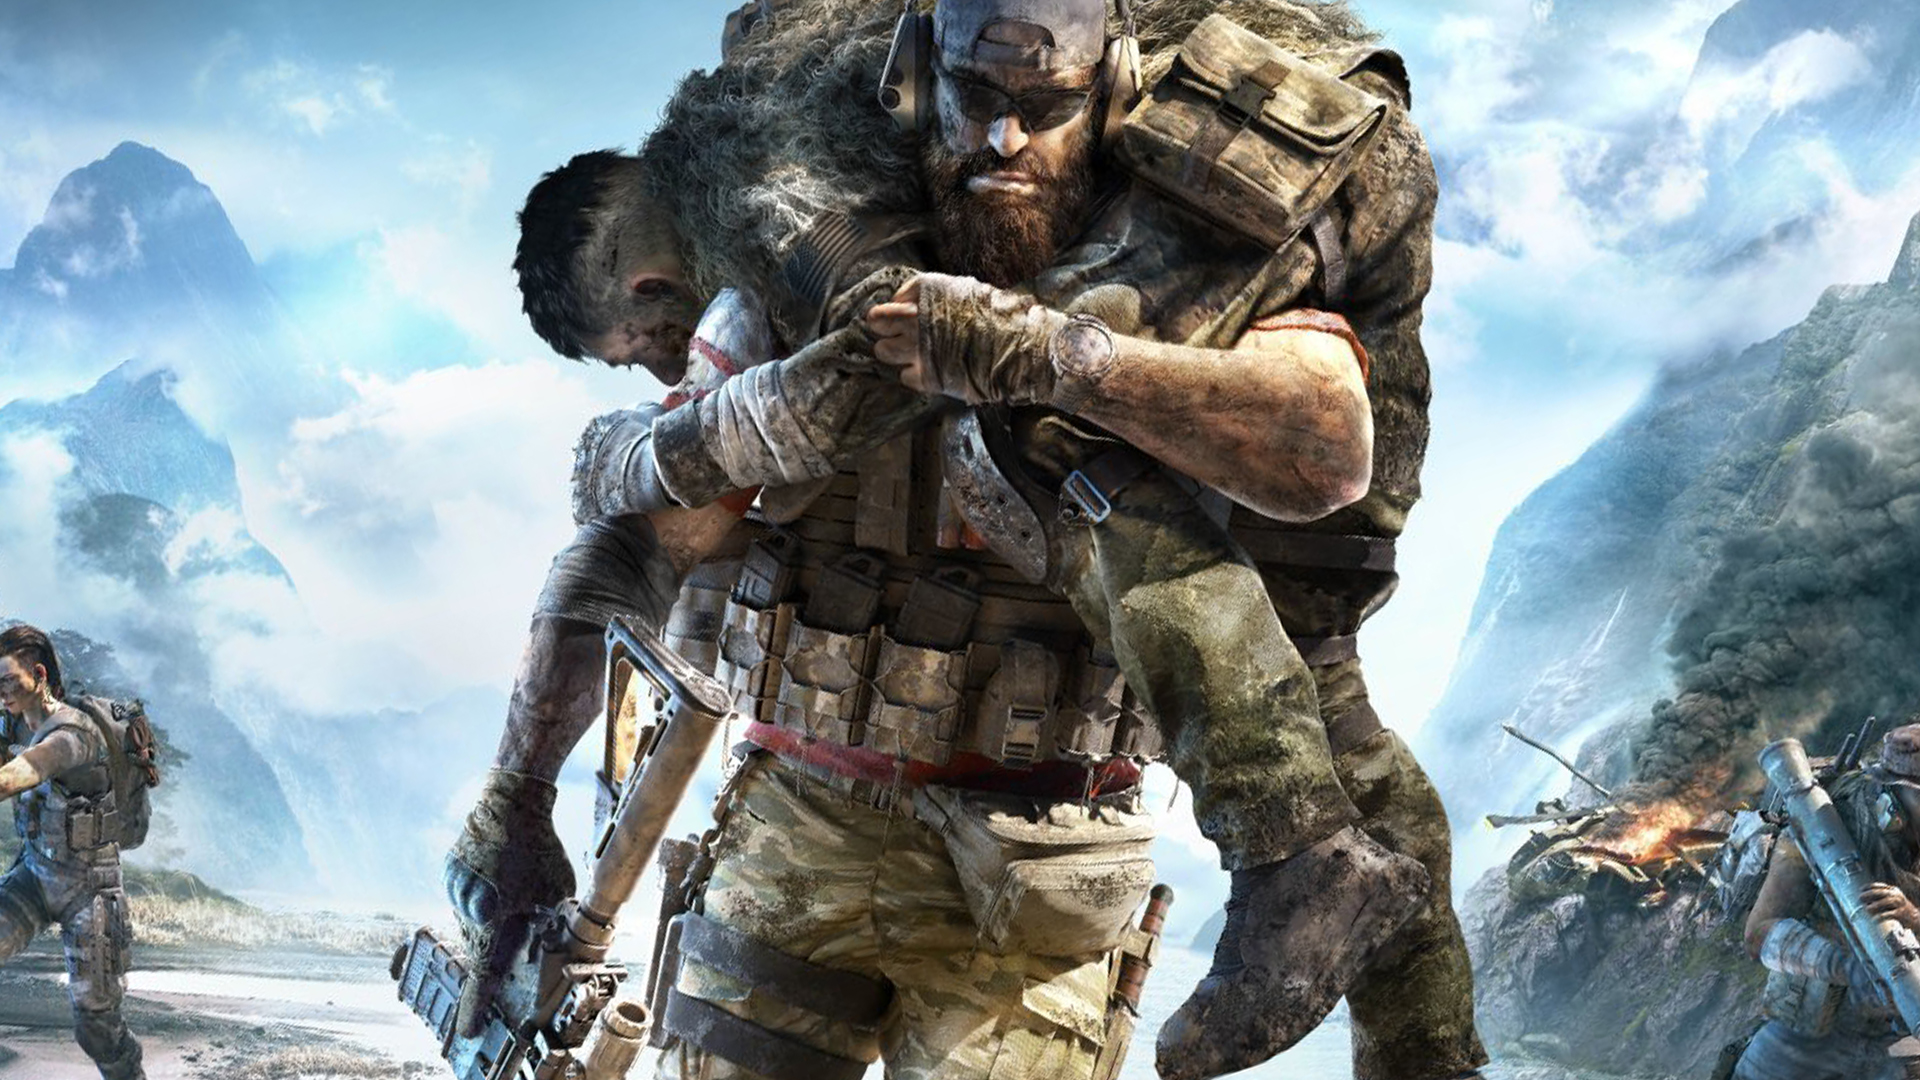 Ghost Recon Breakpoint Ps4 Pro Vs Xbox One X Graphics